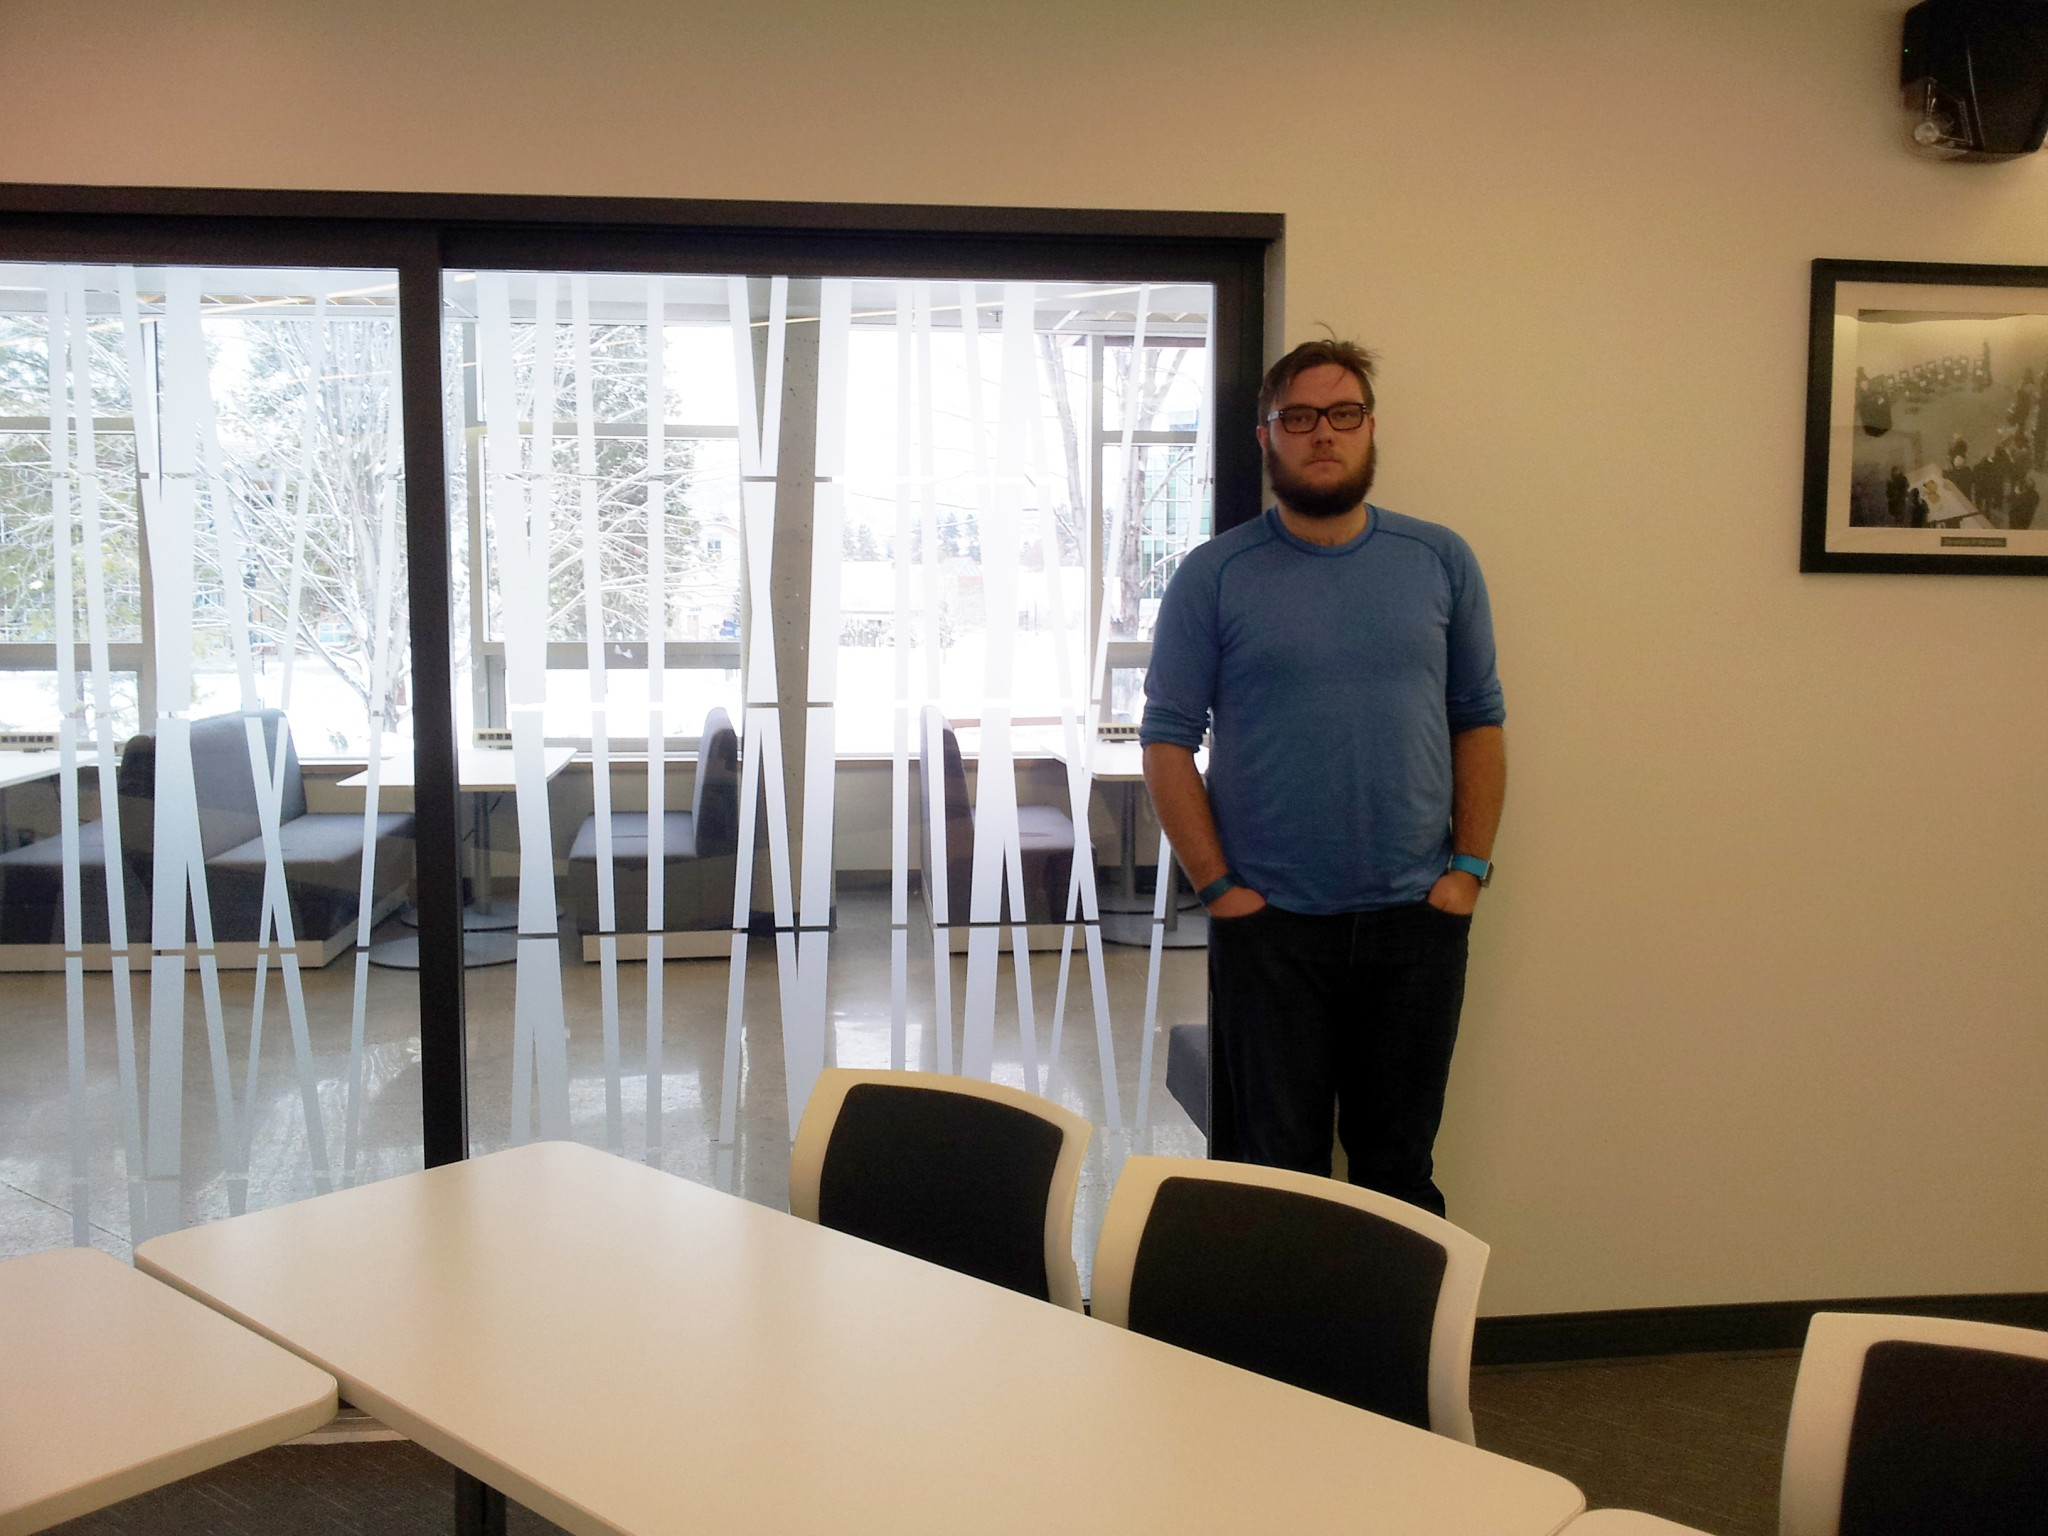 TRUSU president Dustin McIntyre stands in the new TRUSU Boardroom. - Photo by Devan C. Tasa